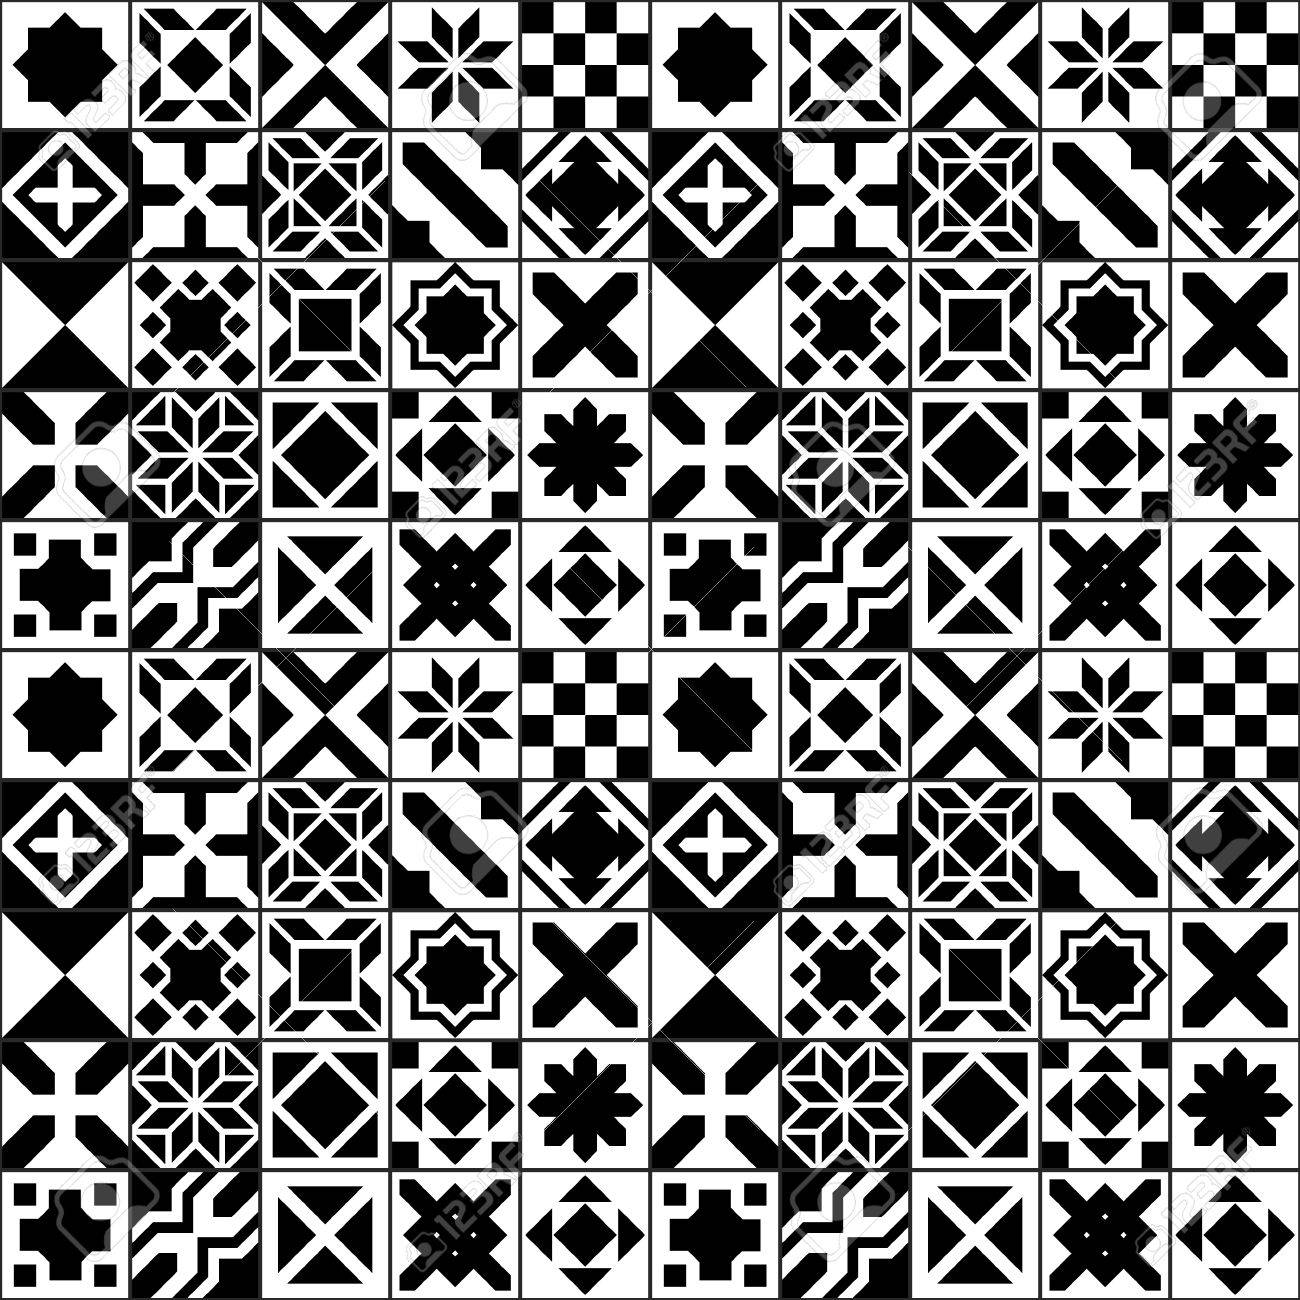 black and white moroccan tiles seamless pattern vector background